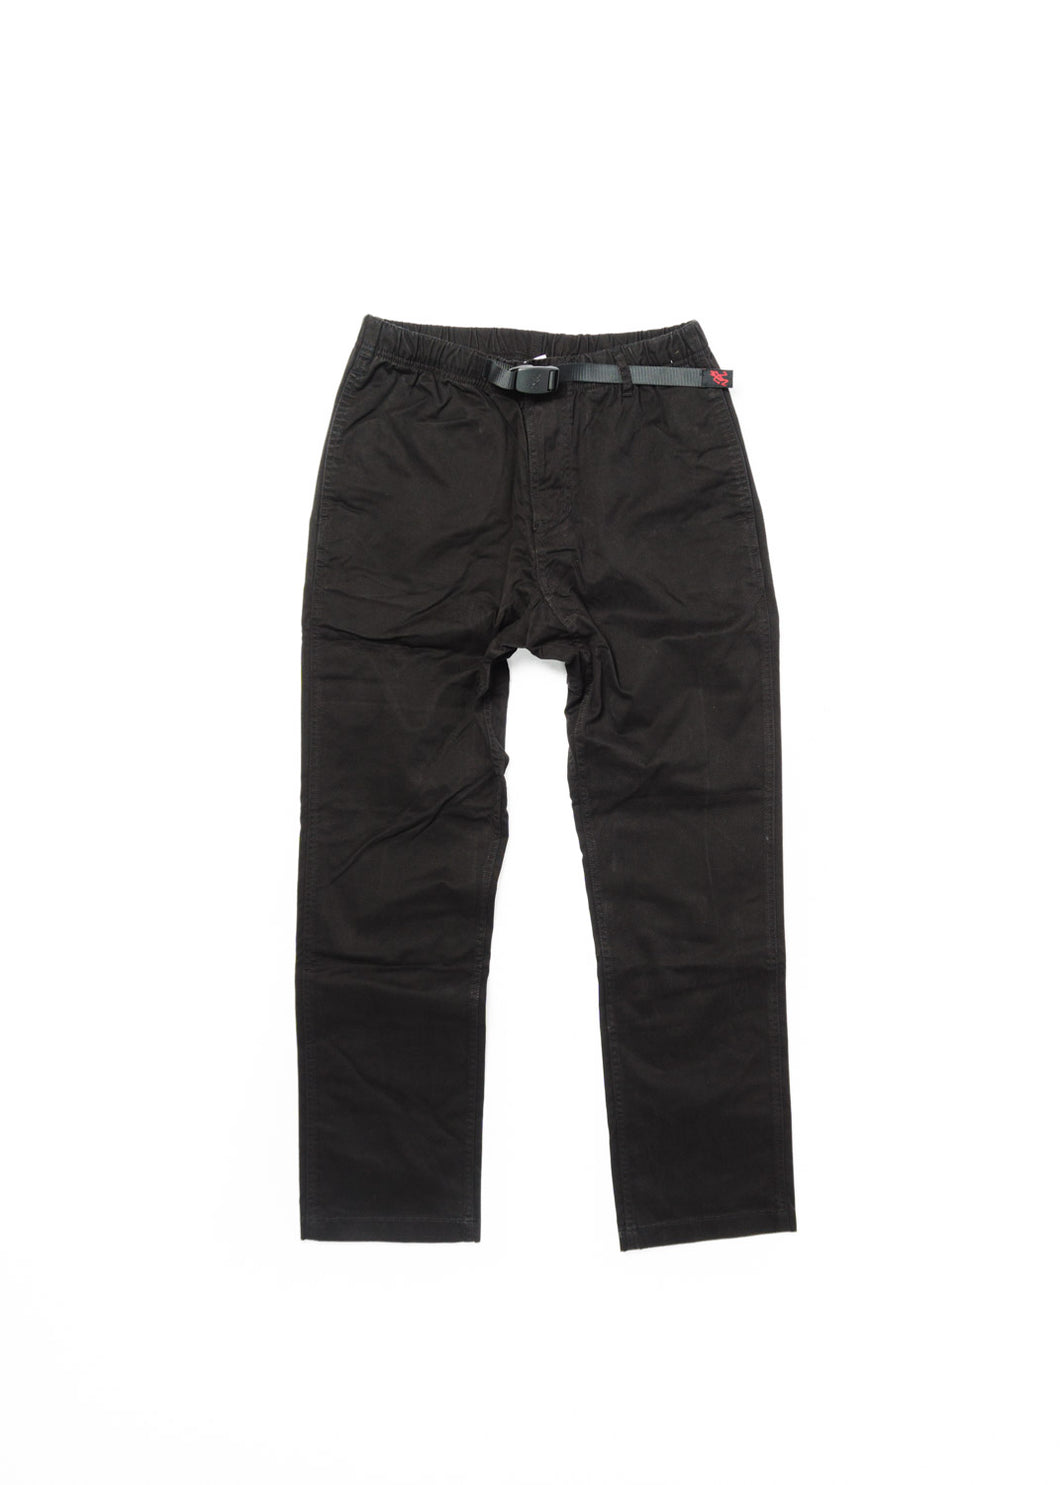 GRAMICCI BLACK JUST CUT NN PANTS